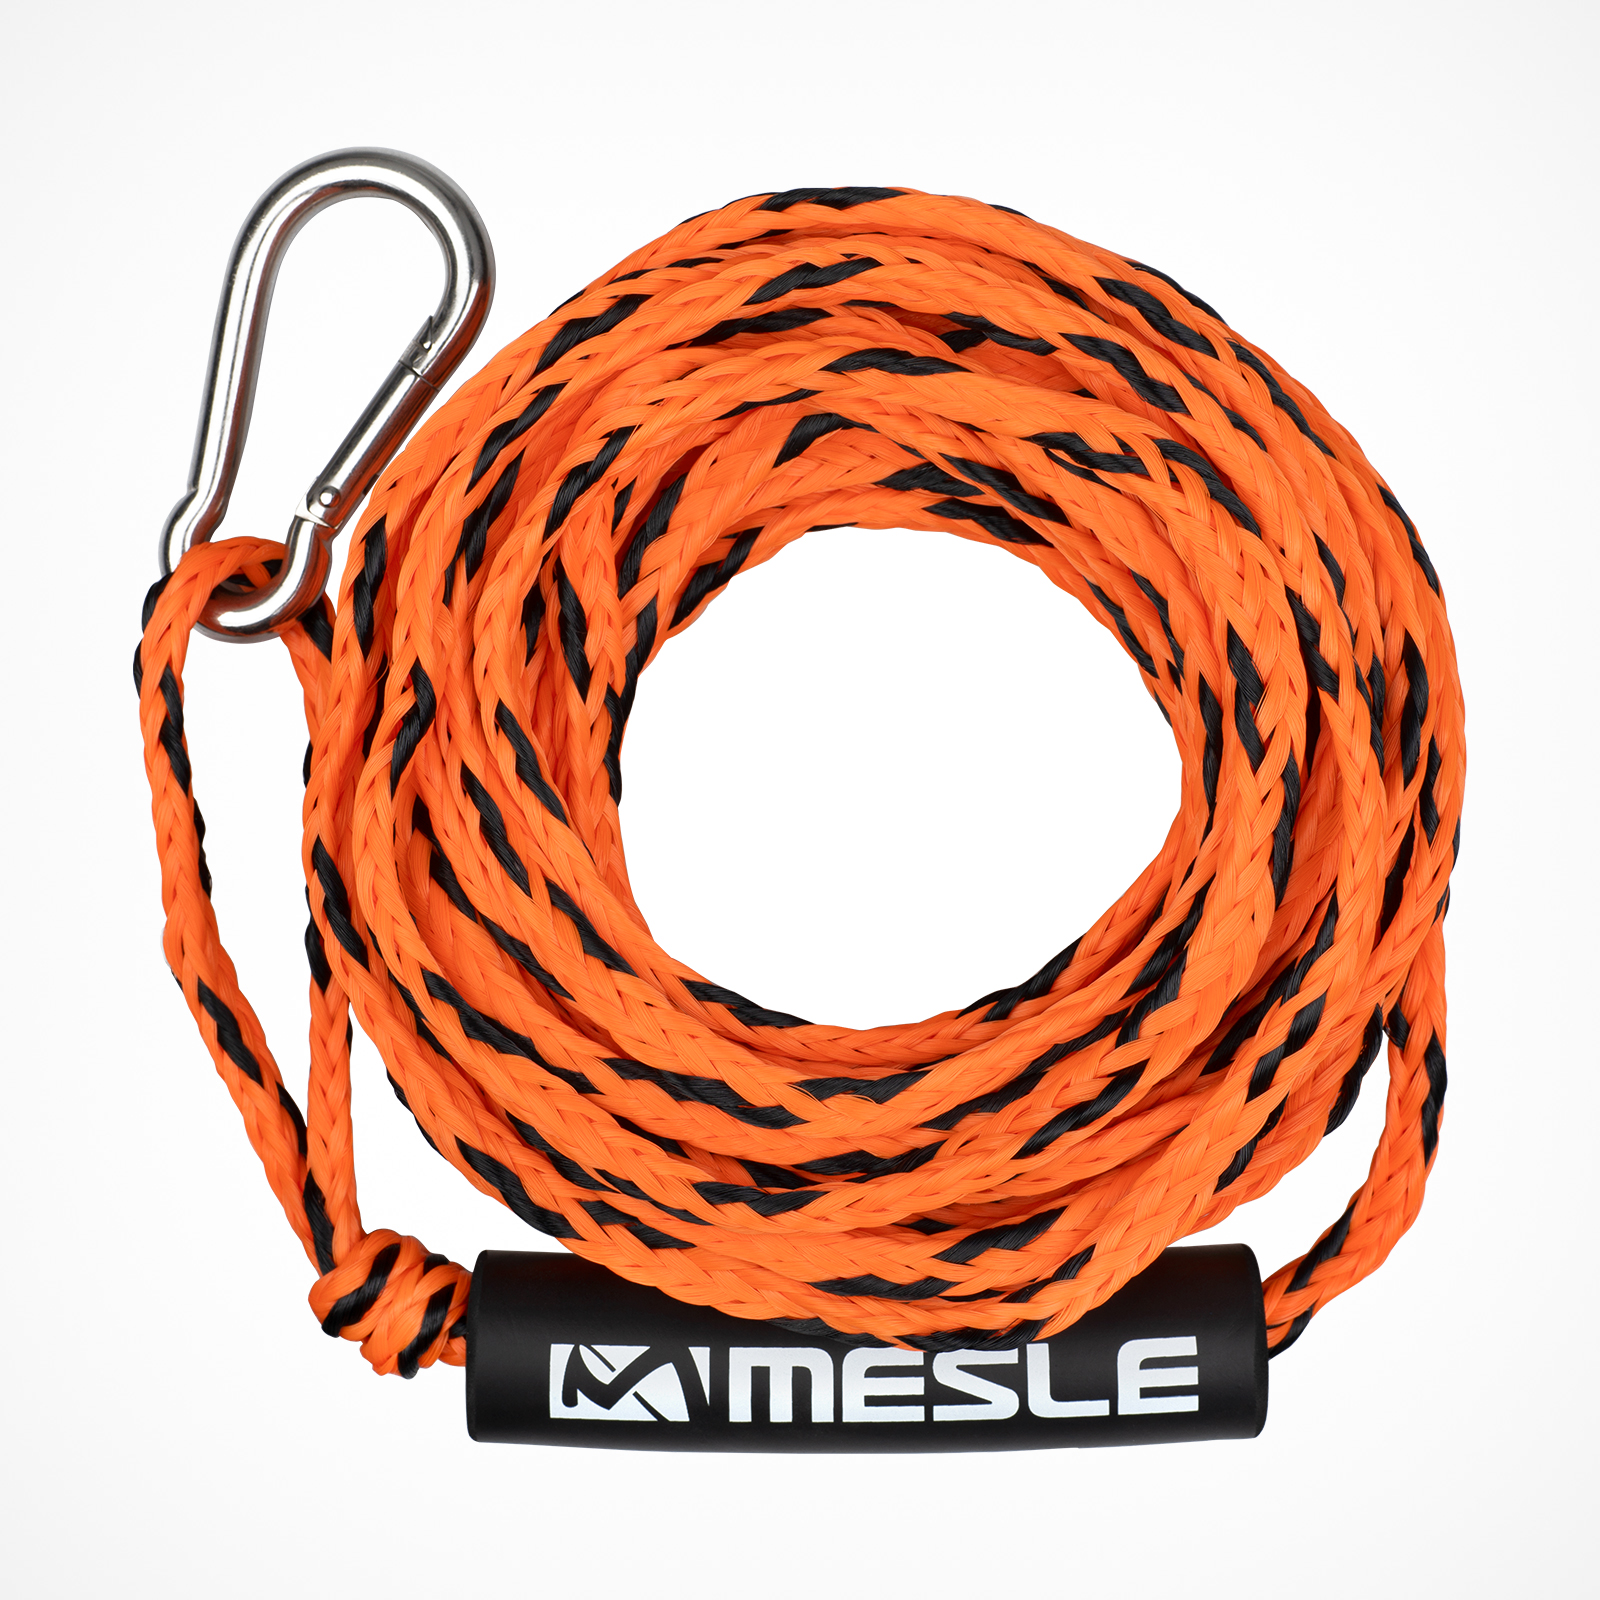 MESLE Tow Rope for 2 persons in orange, 50' for Water Sports Tubes, floating and with Carabiner